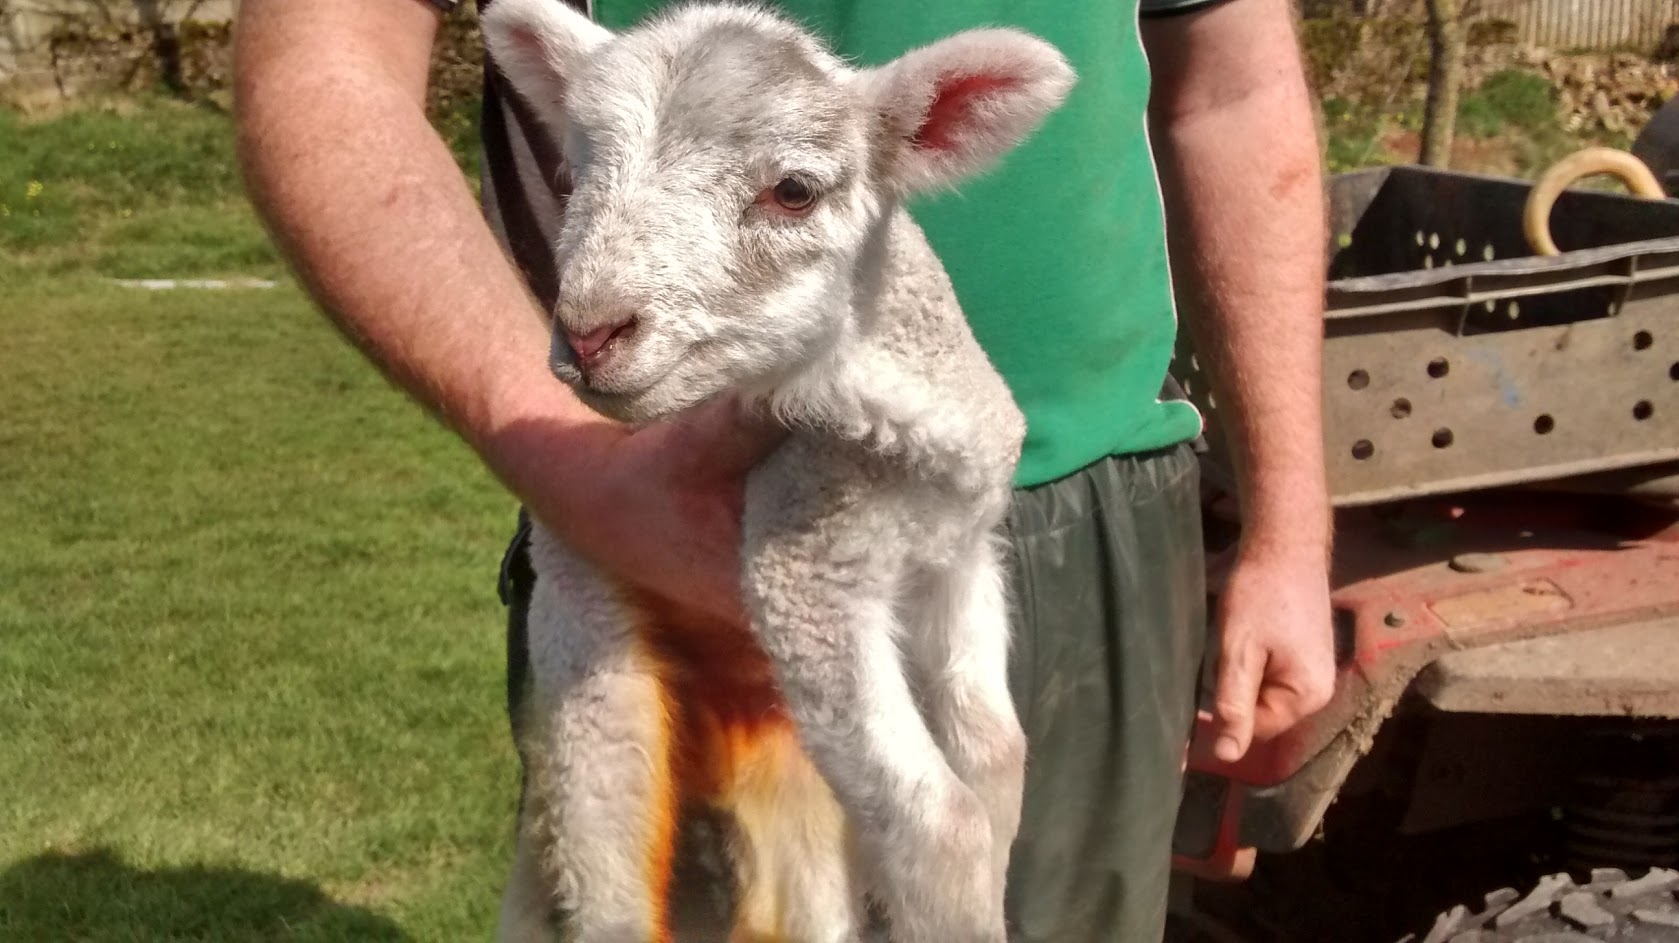 Hole in one for lost lamb who scores new home after rescue from golf course